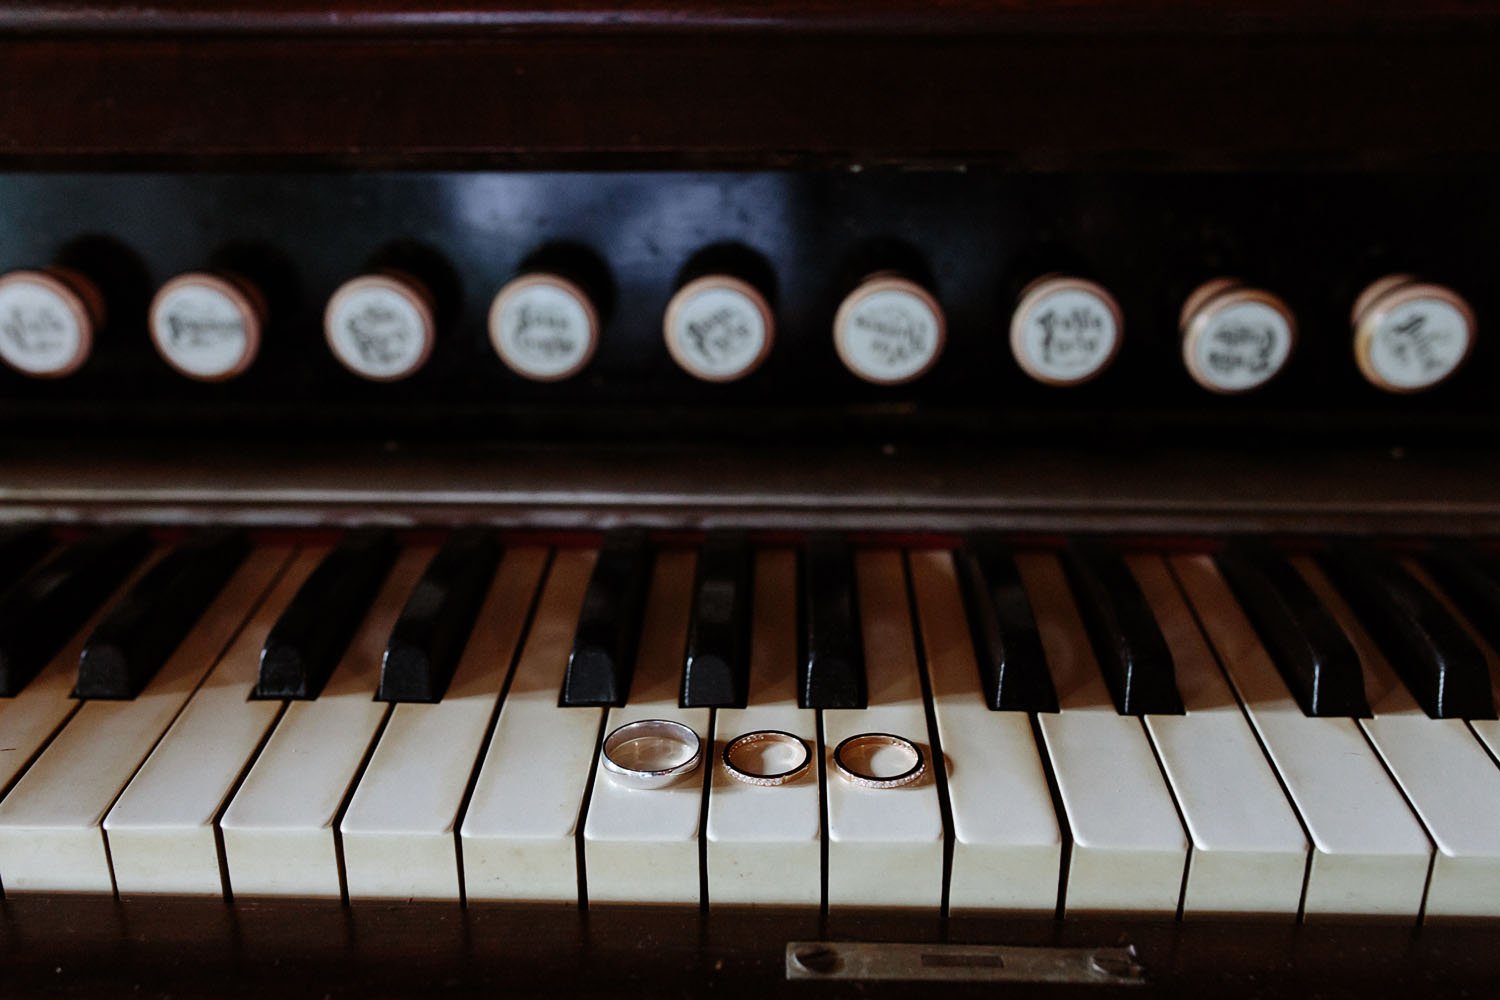 wedding rings on piano keys